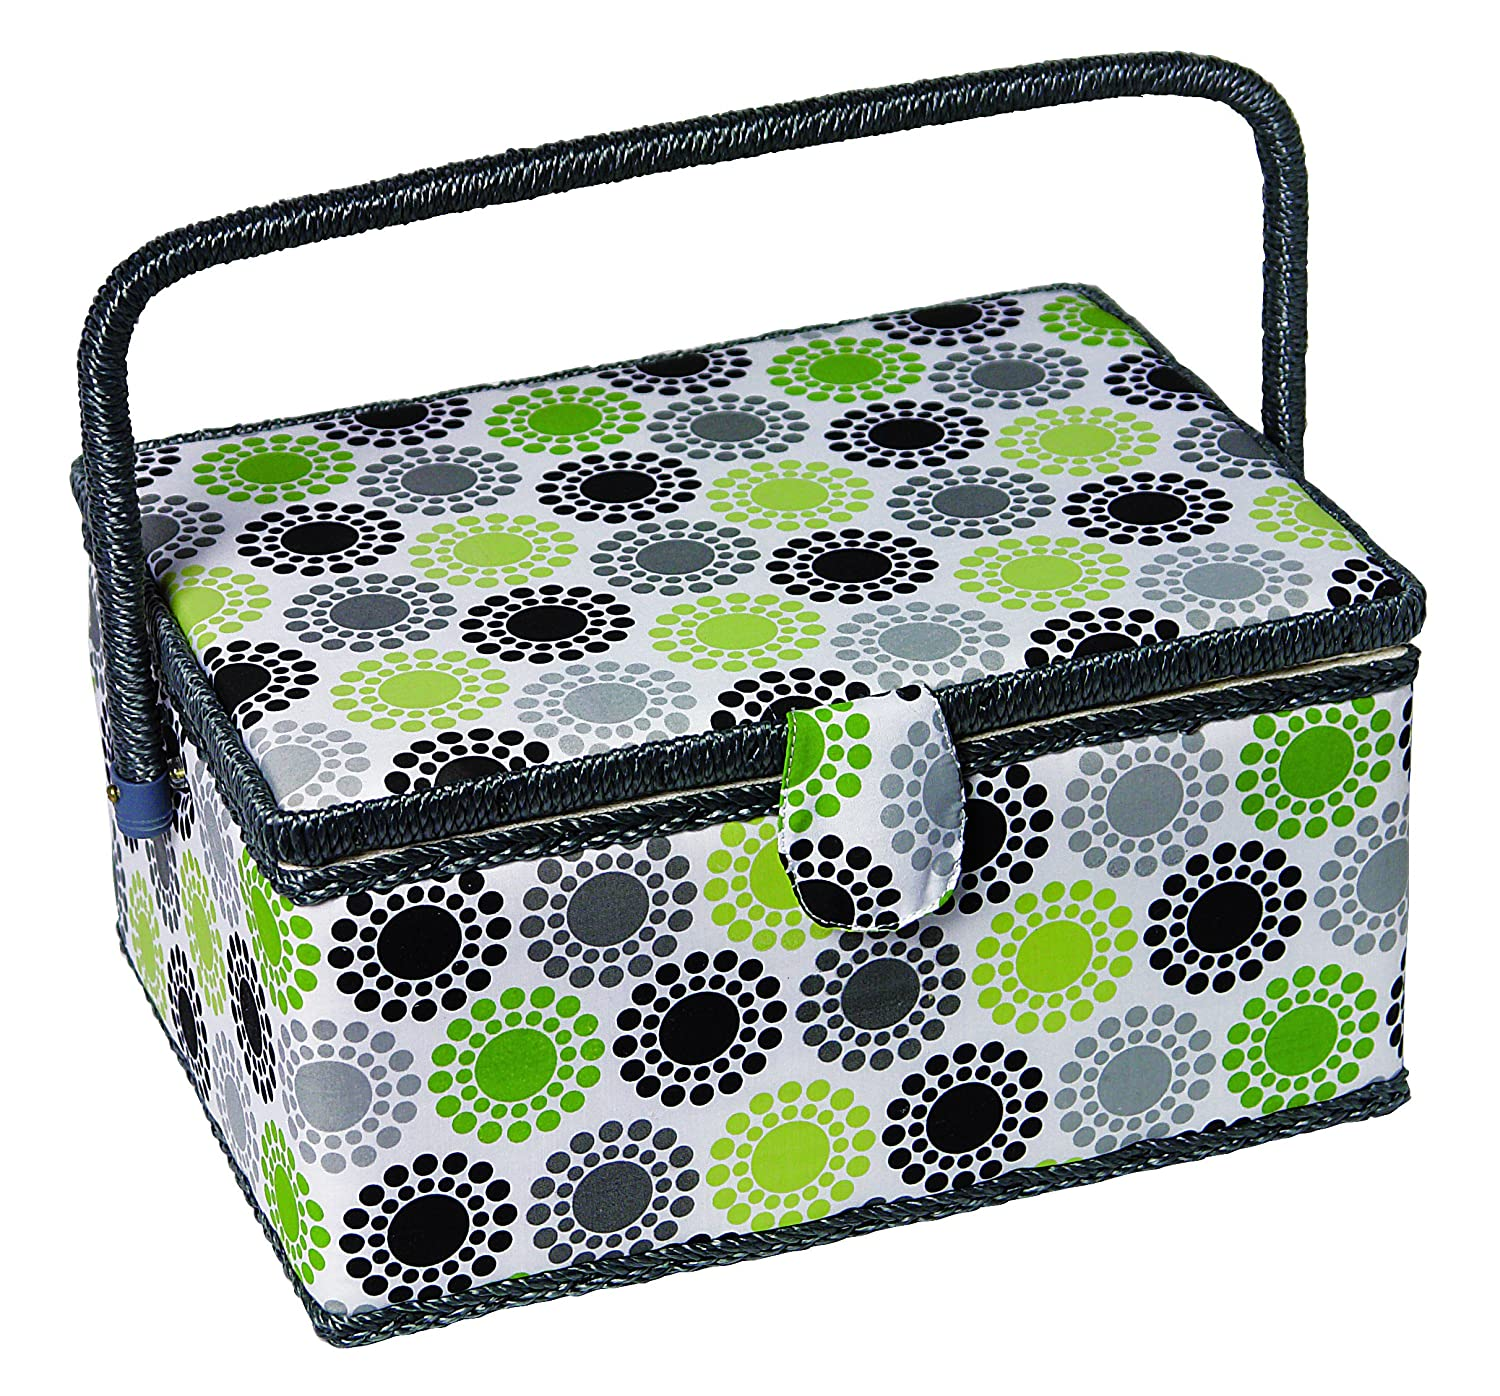 Kleiber Kleiber Large Rectangular Sewing Basket Sunflower Pattern with Whicker Handle, Lime Green/Grey/Black by Kleiber 918-81